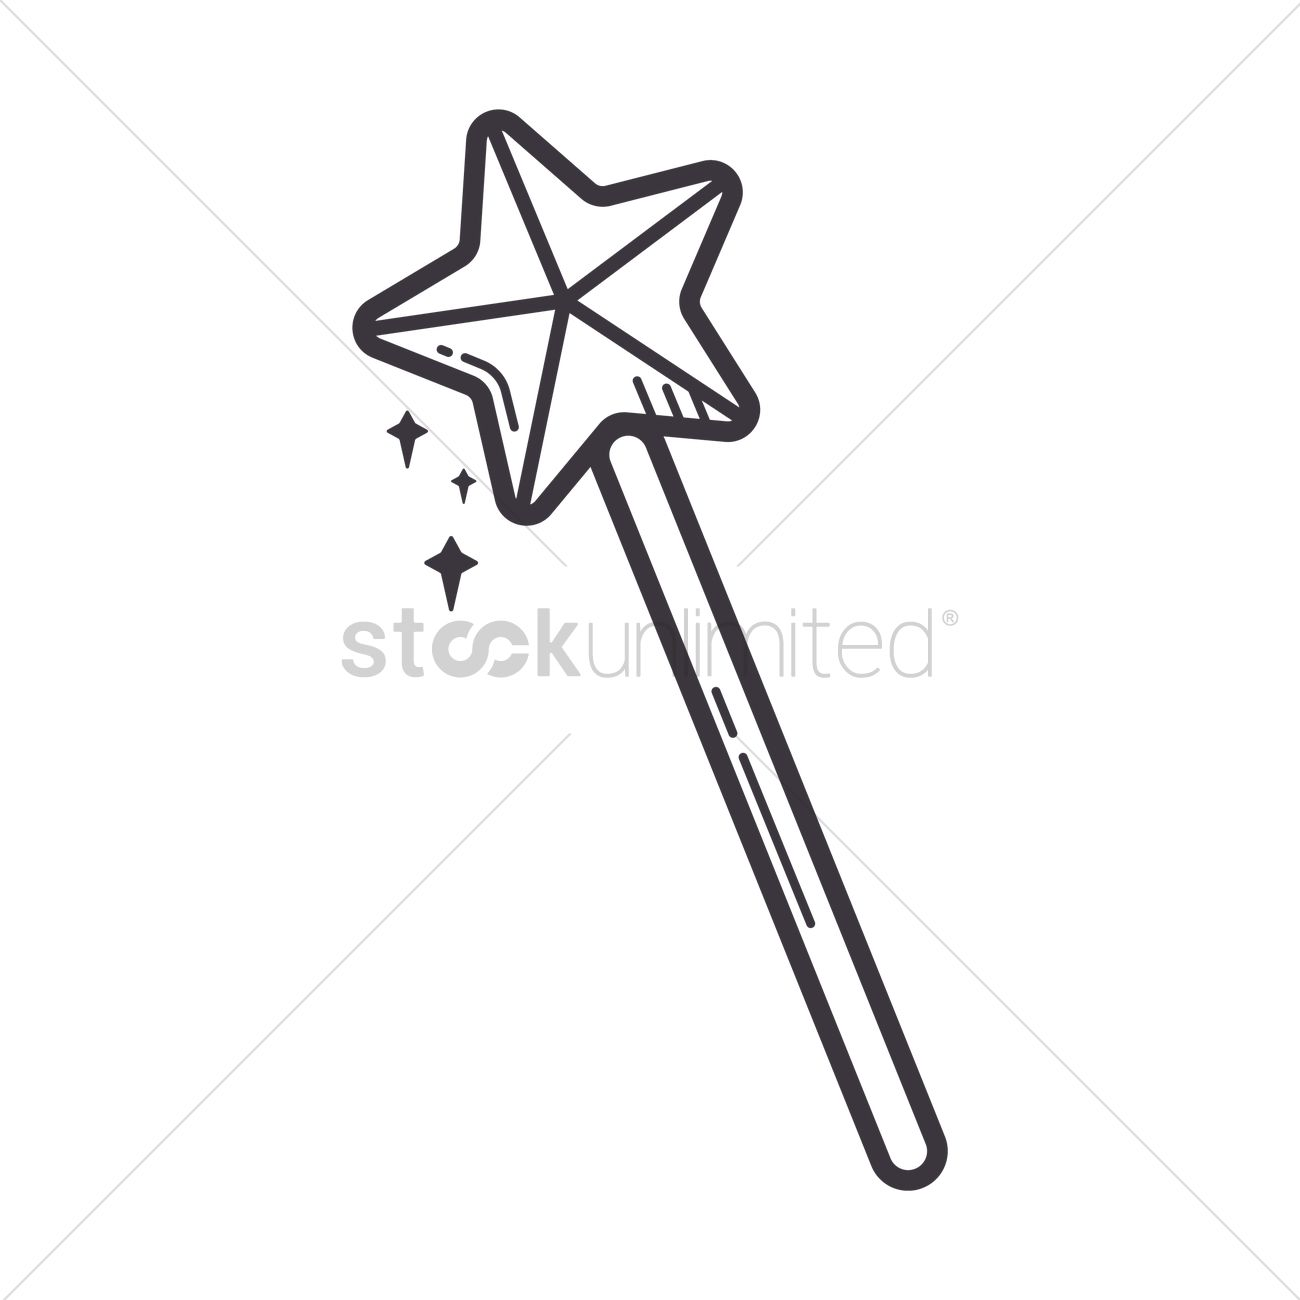 Free Angel magic wand Vector Image - 1533152 | StockUnlimited